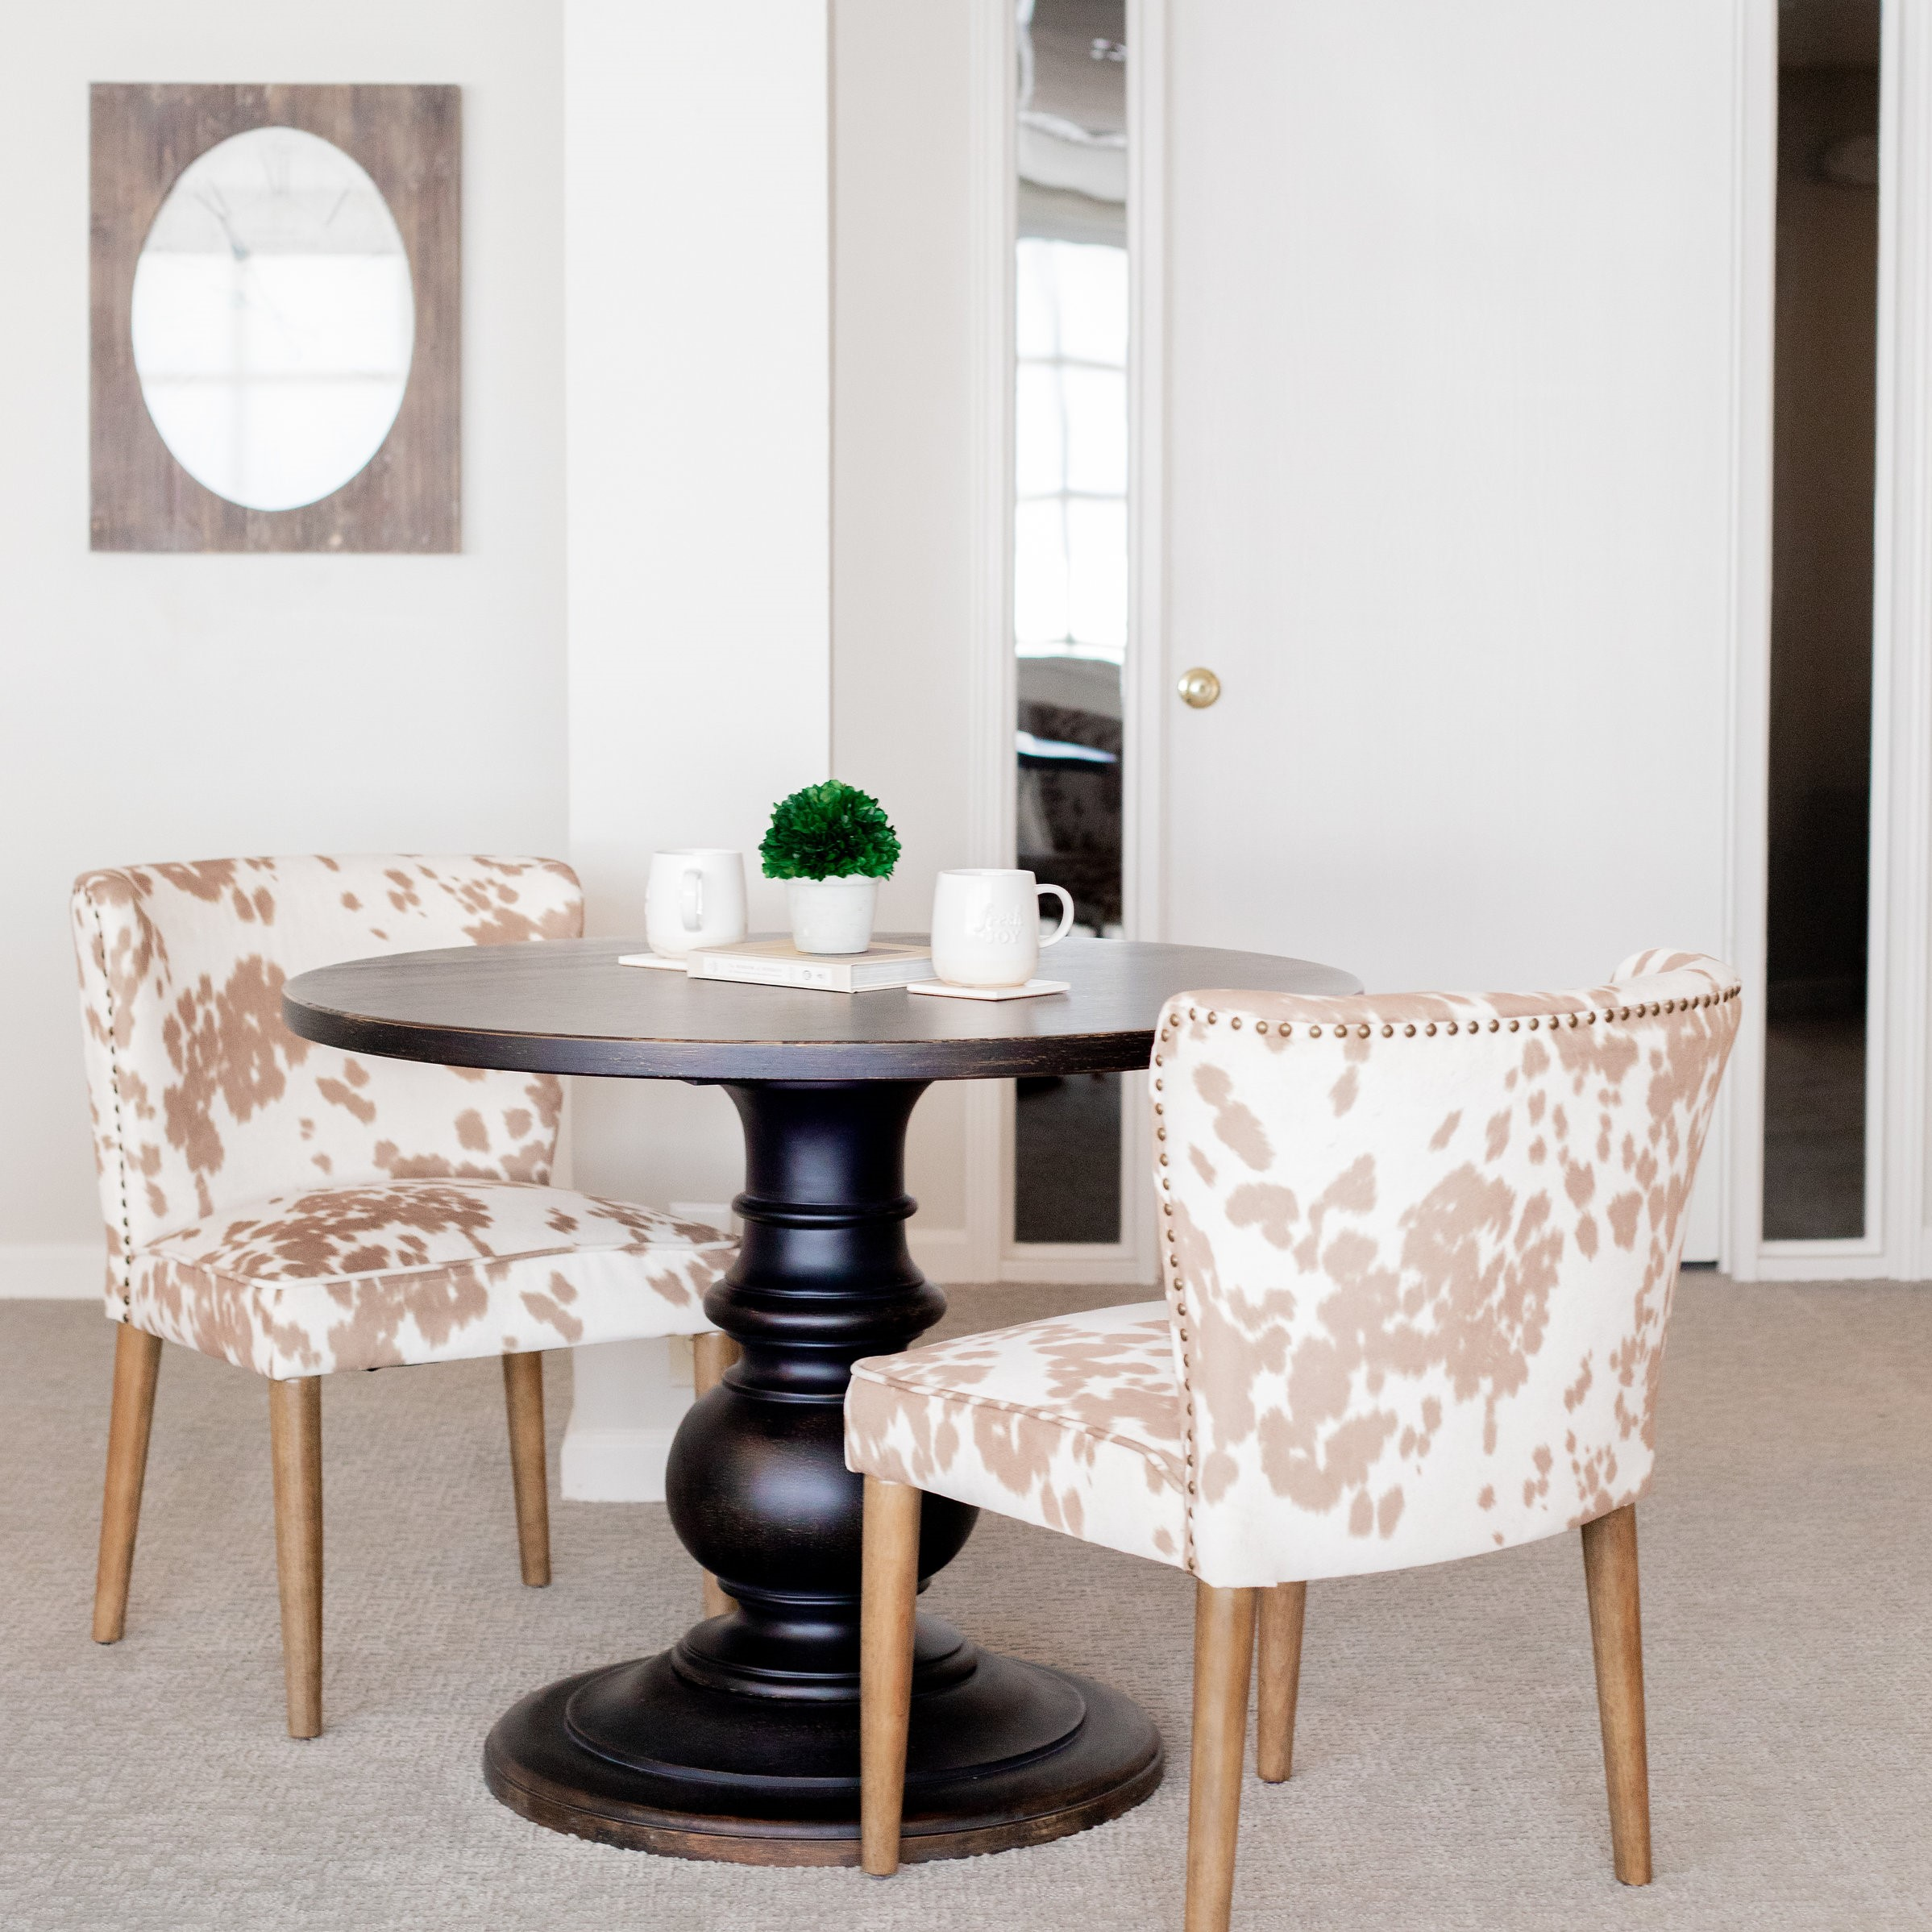 - Full-time $125/mo (Unlimited Days)Enjoy all Trouvaille Omaha Member Benefits PLUS:10 Hours Meeting Room CreditsTrouvaille Omaha Mailing Address